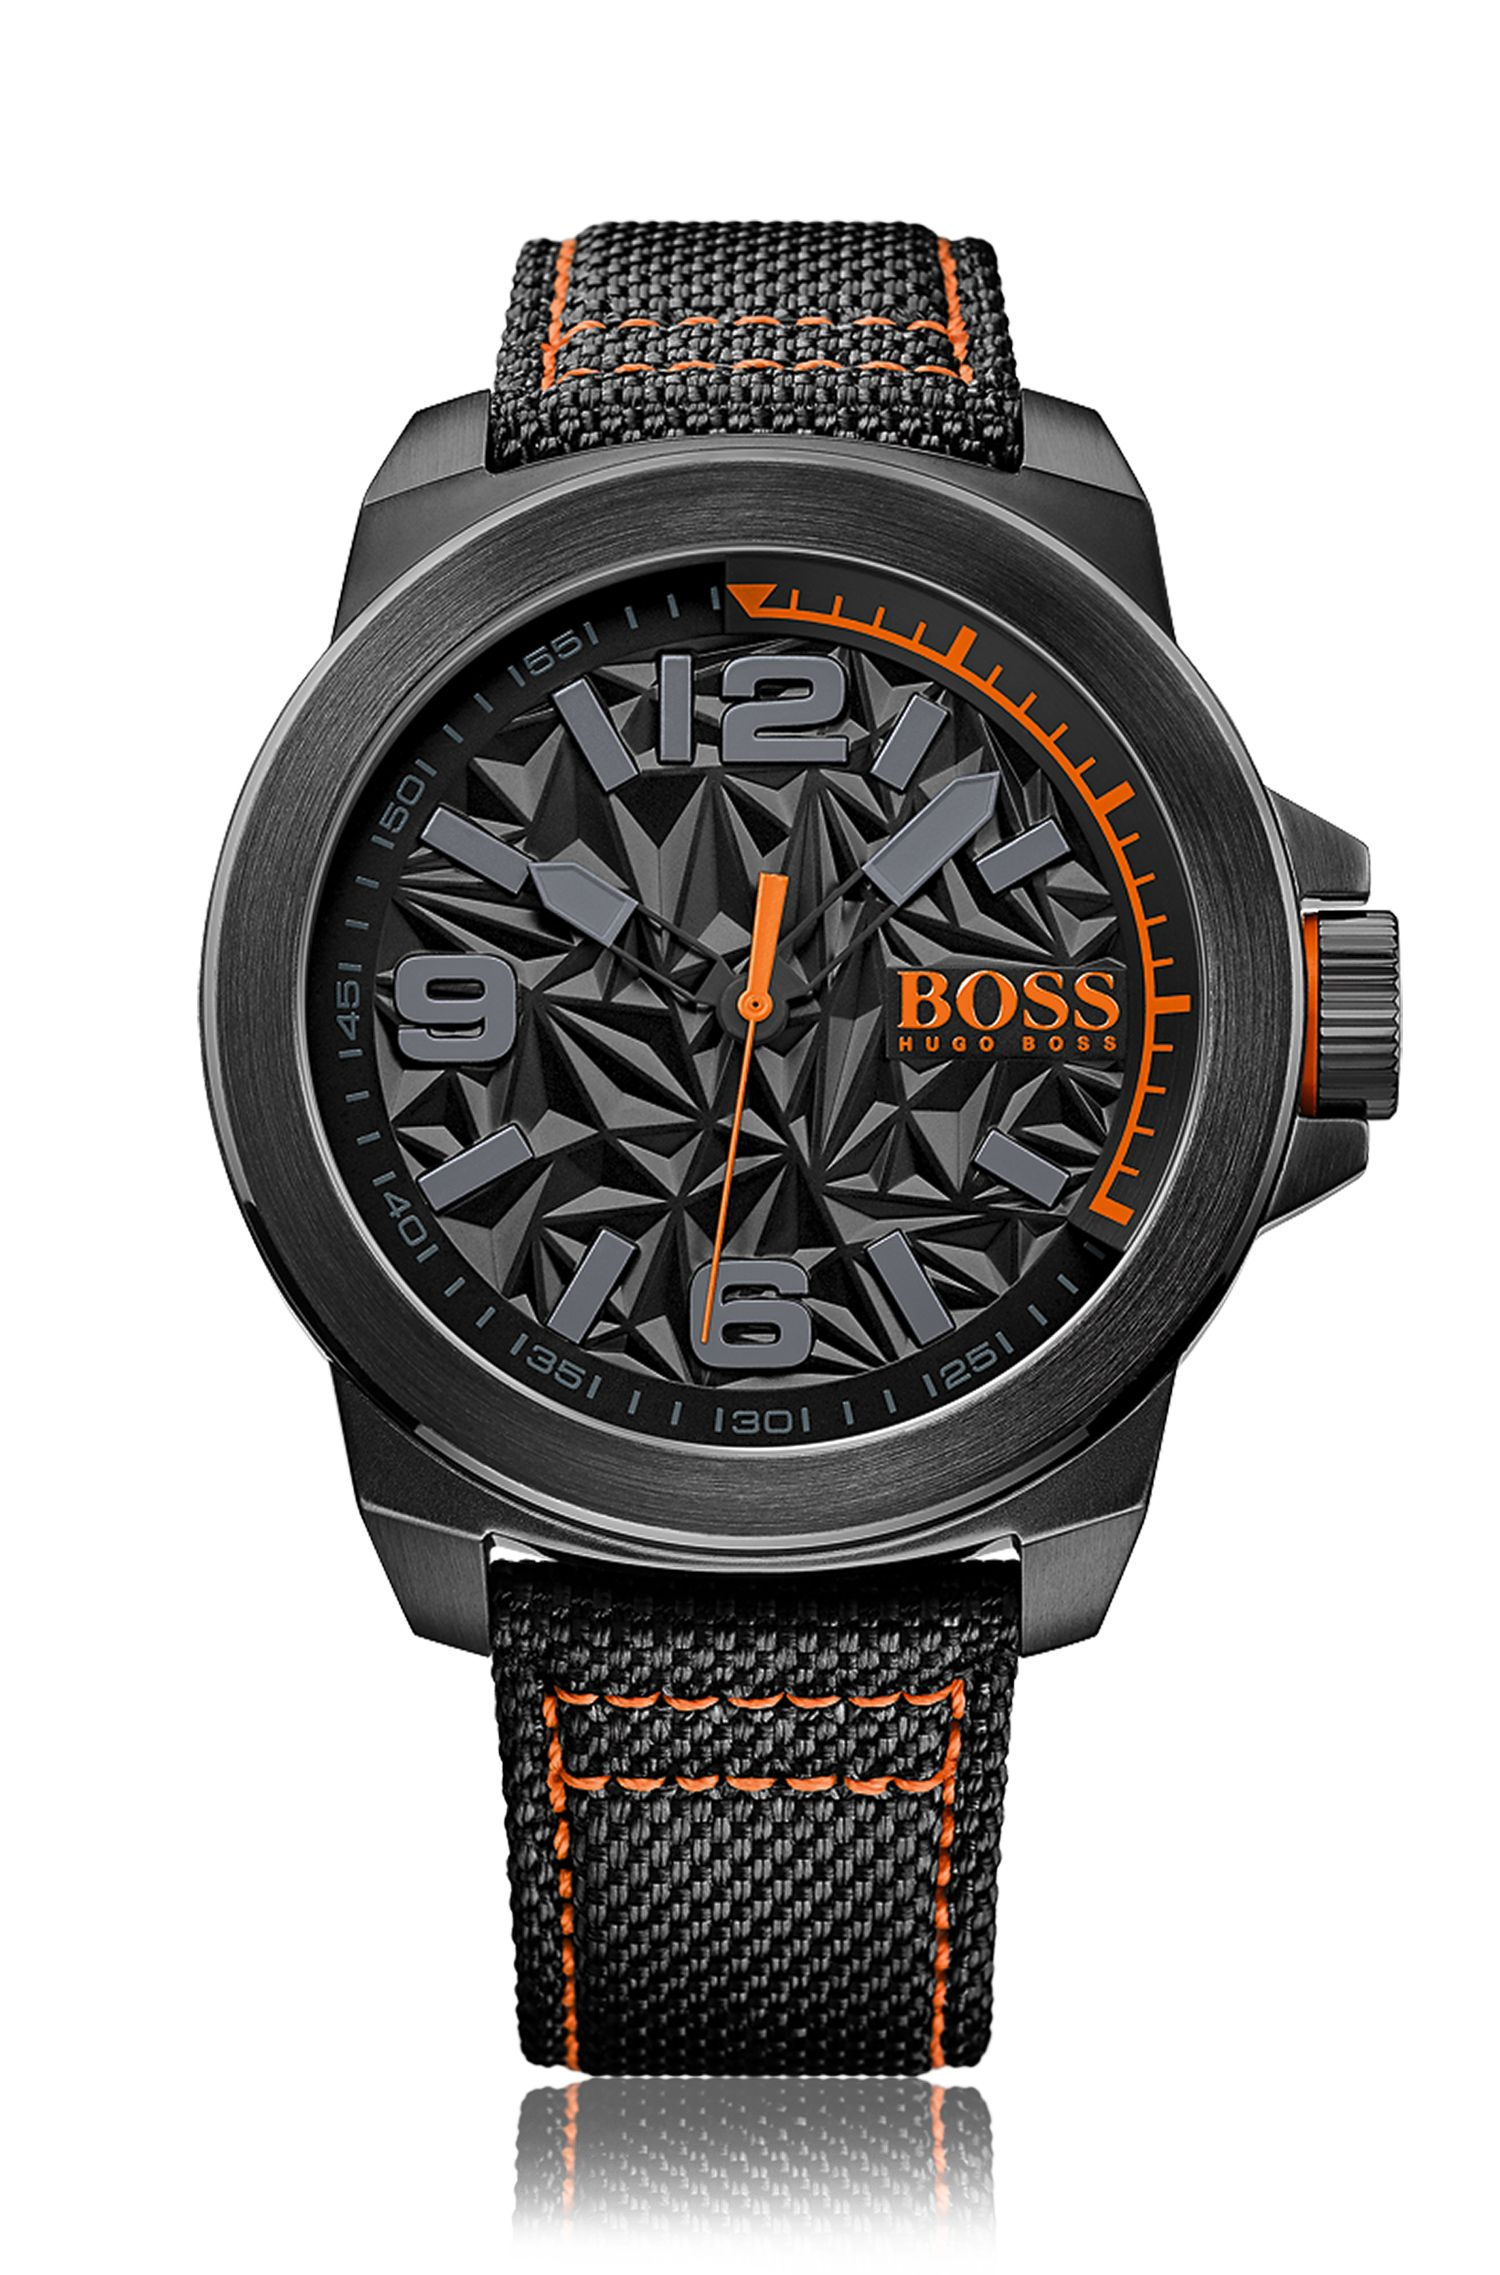 Black stainless-steel watch with architectural dial and fabric strap